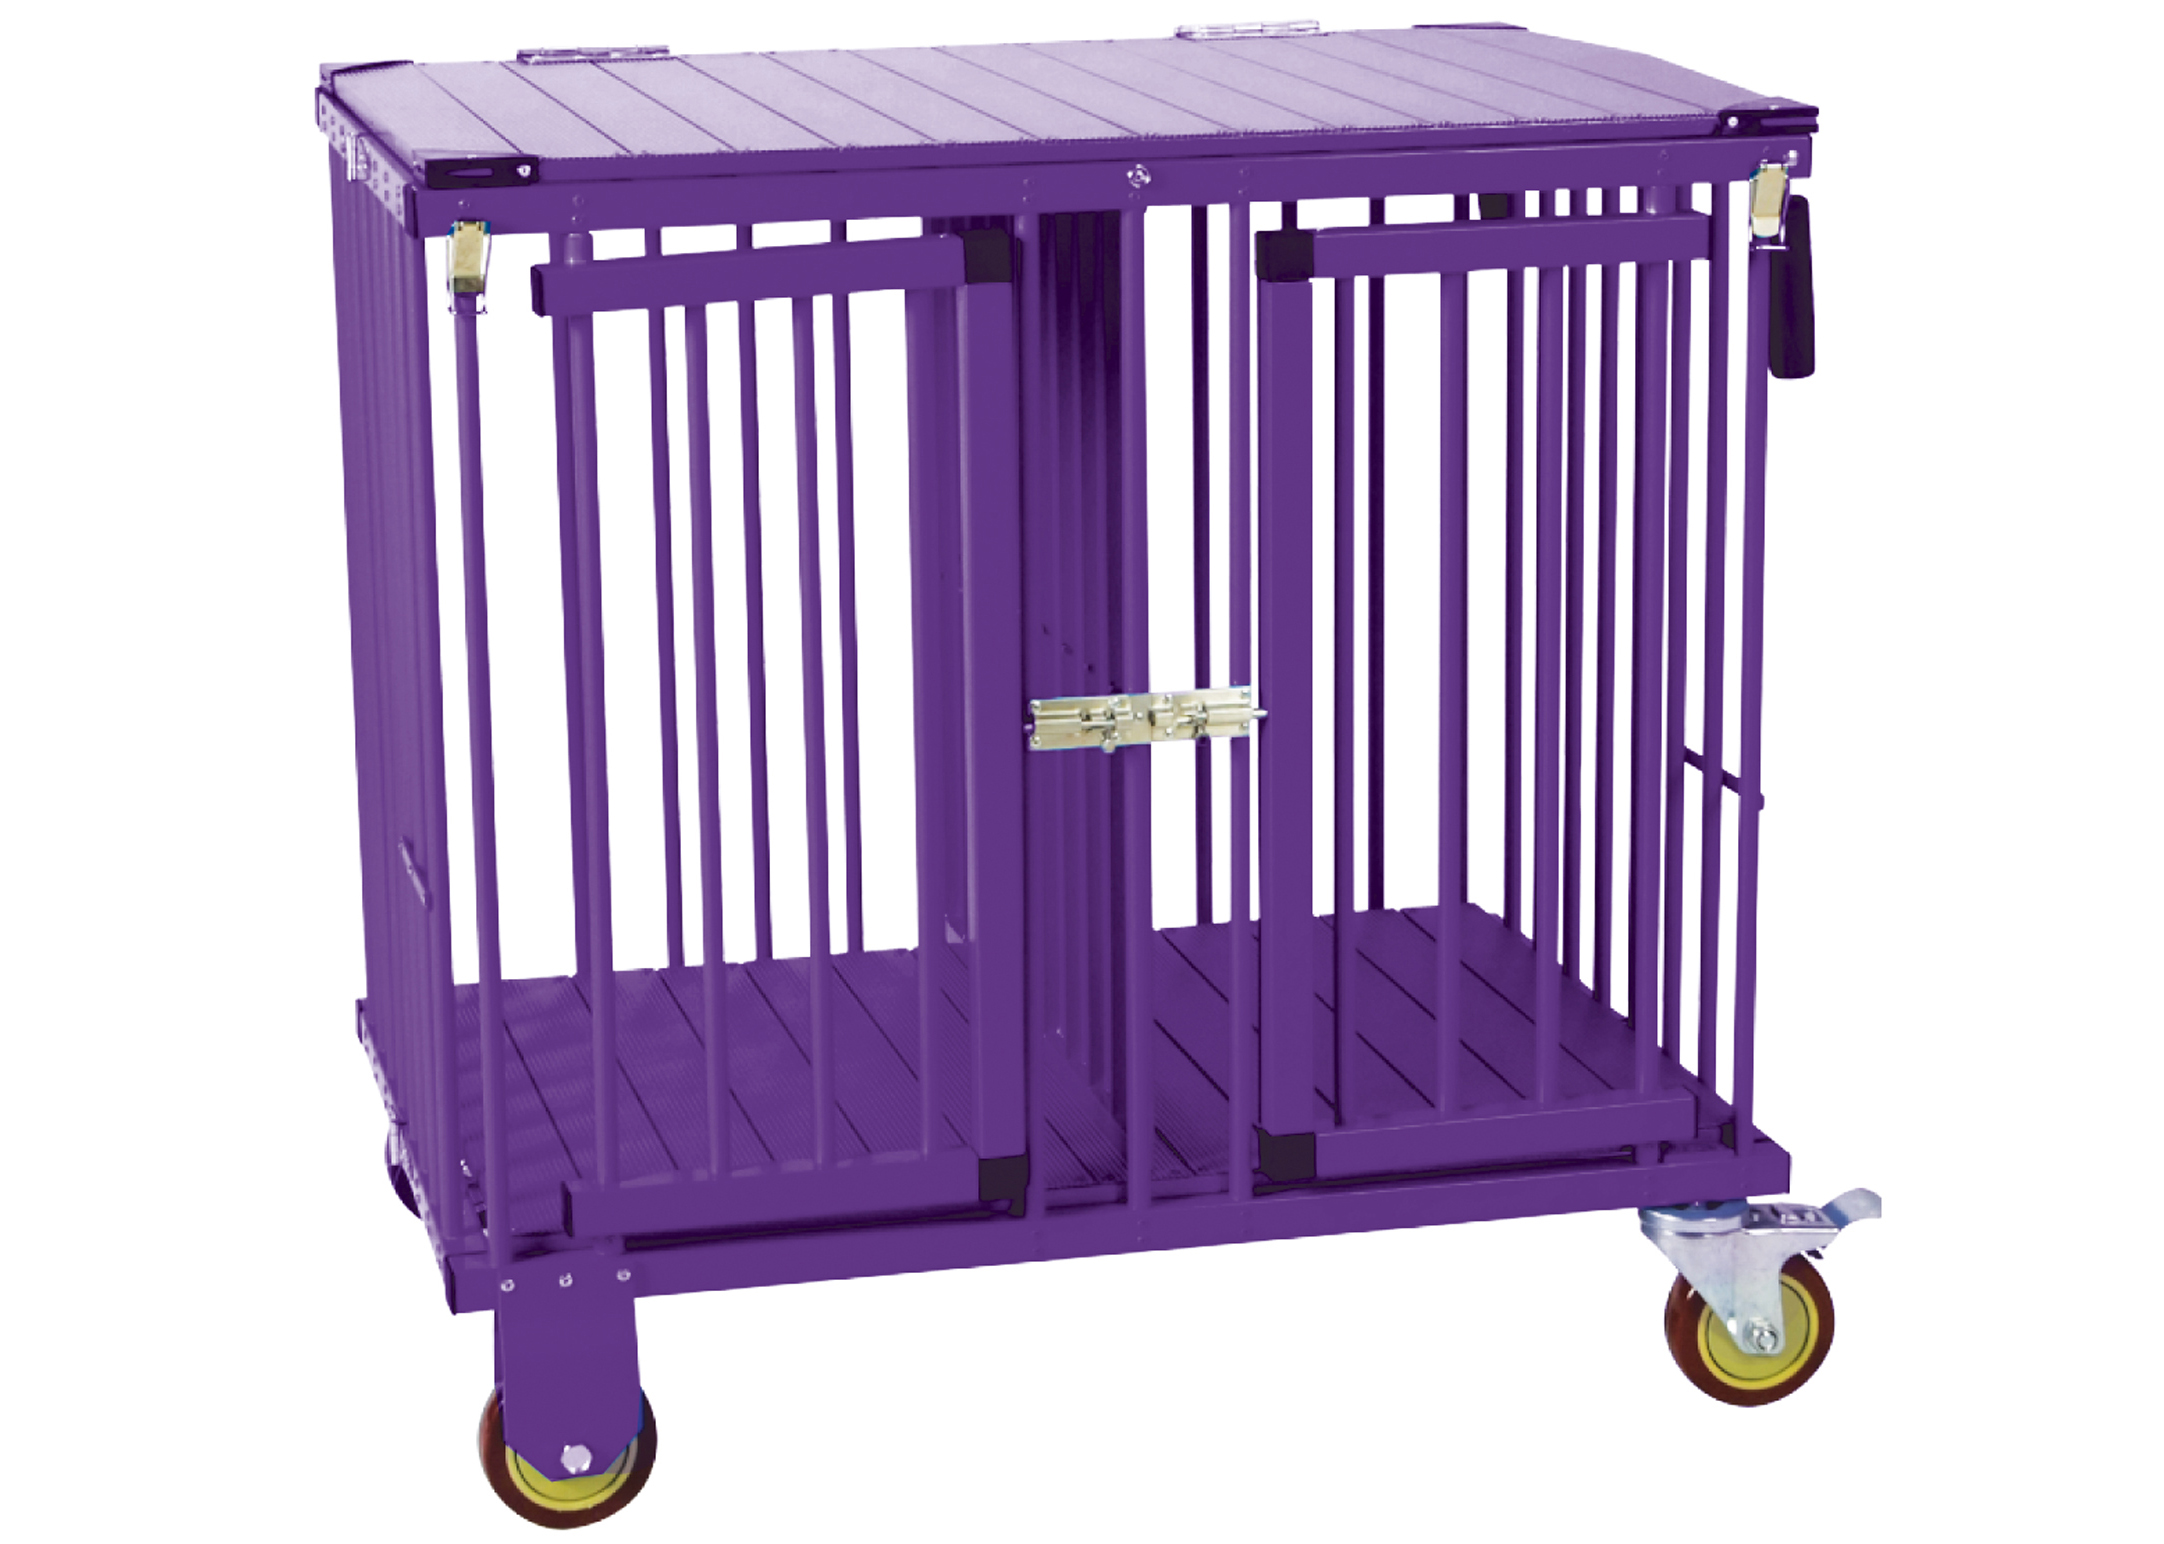 Show Tech All-in-One Show trolley 2-Couchette Mauve 78x54x83cmh Chariot